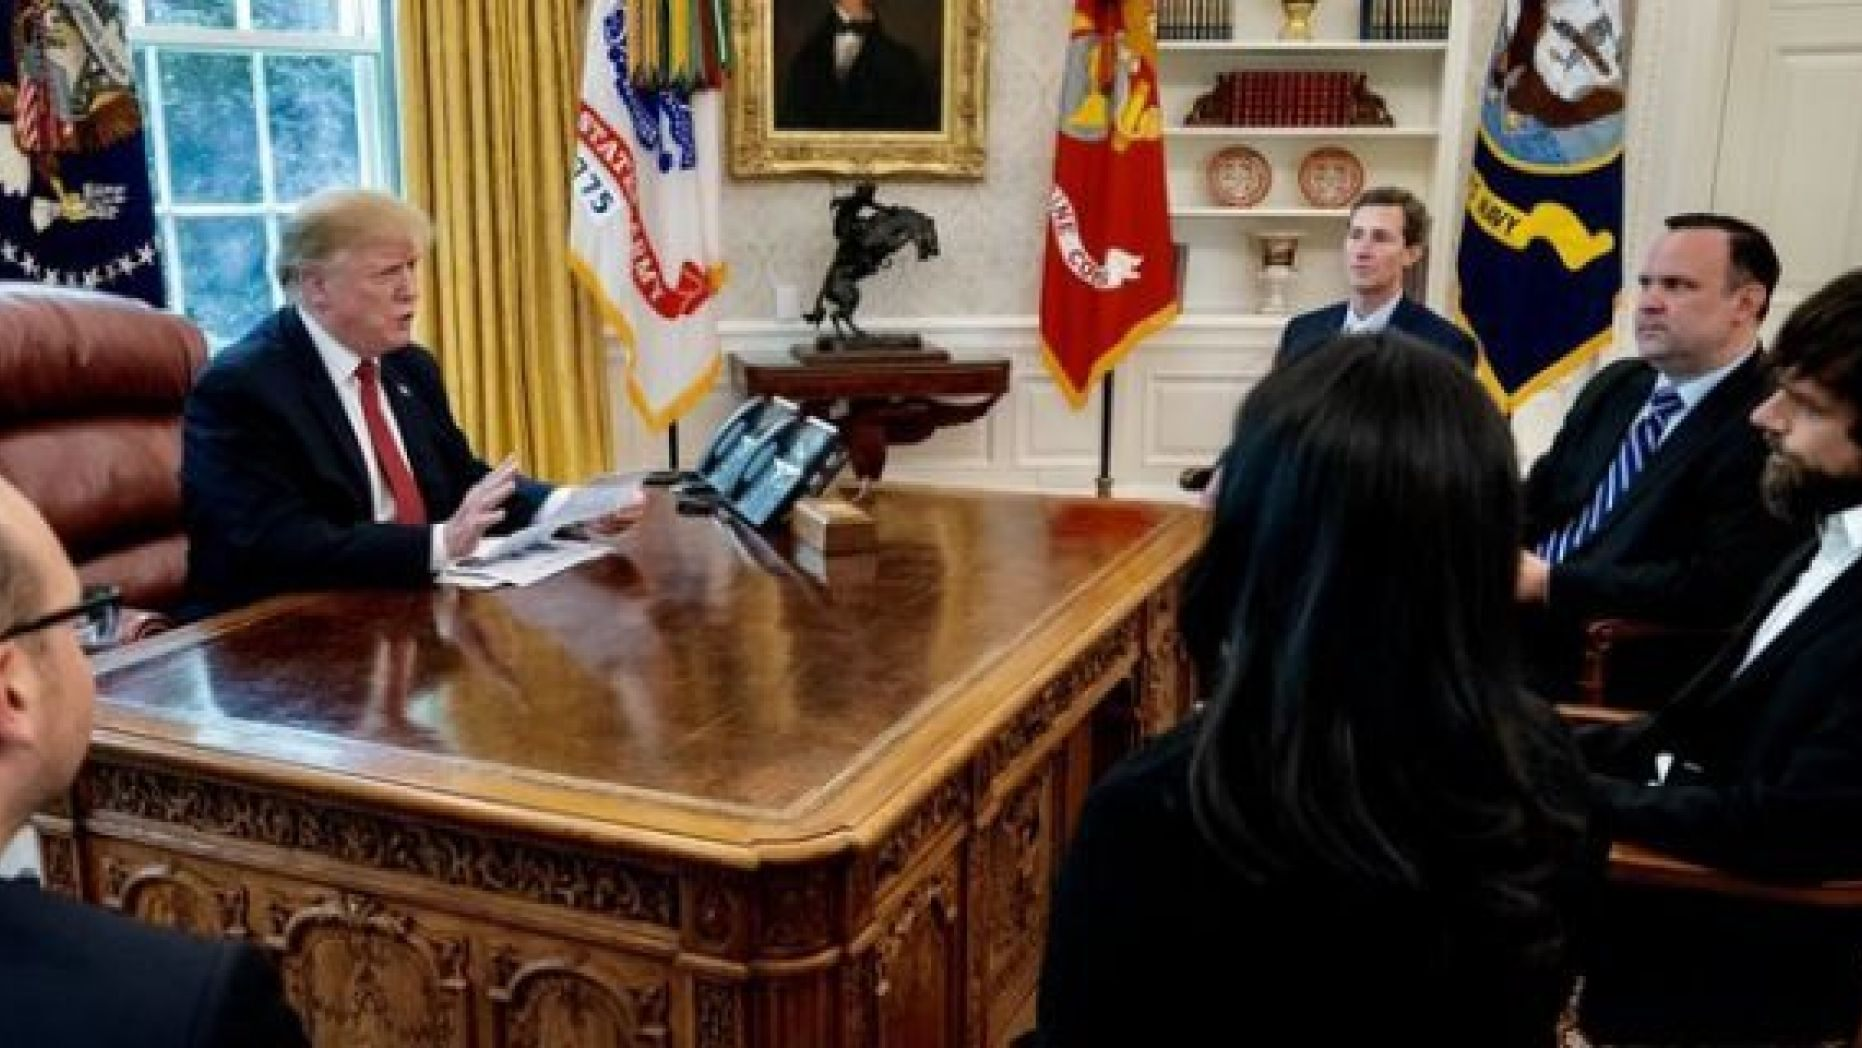 President Donald Trump meets Twitter CEO Dorsey